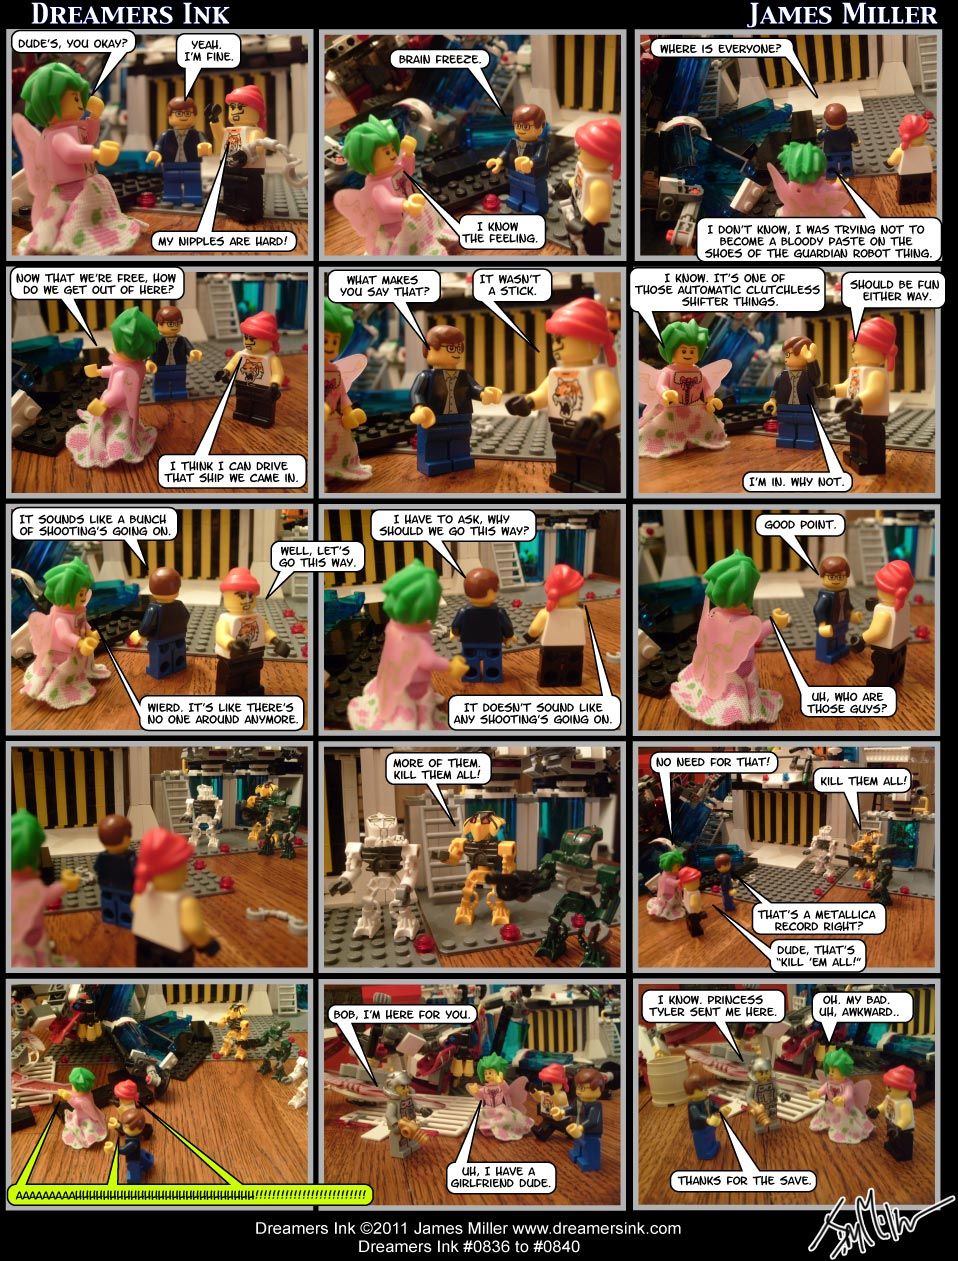 Strips #0836 To #0840